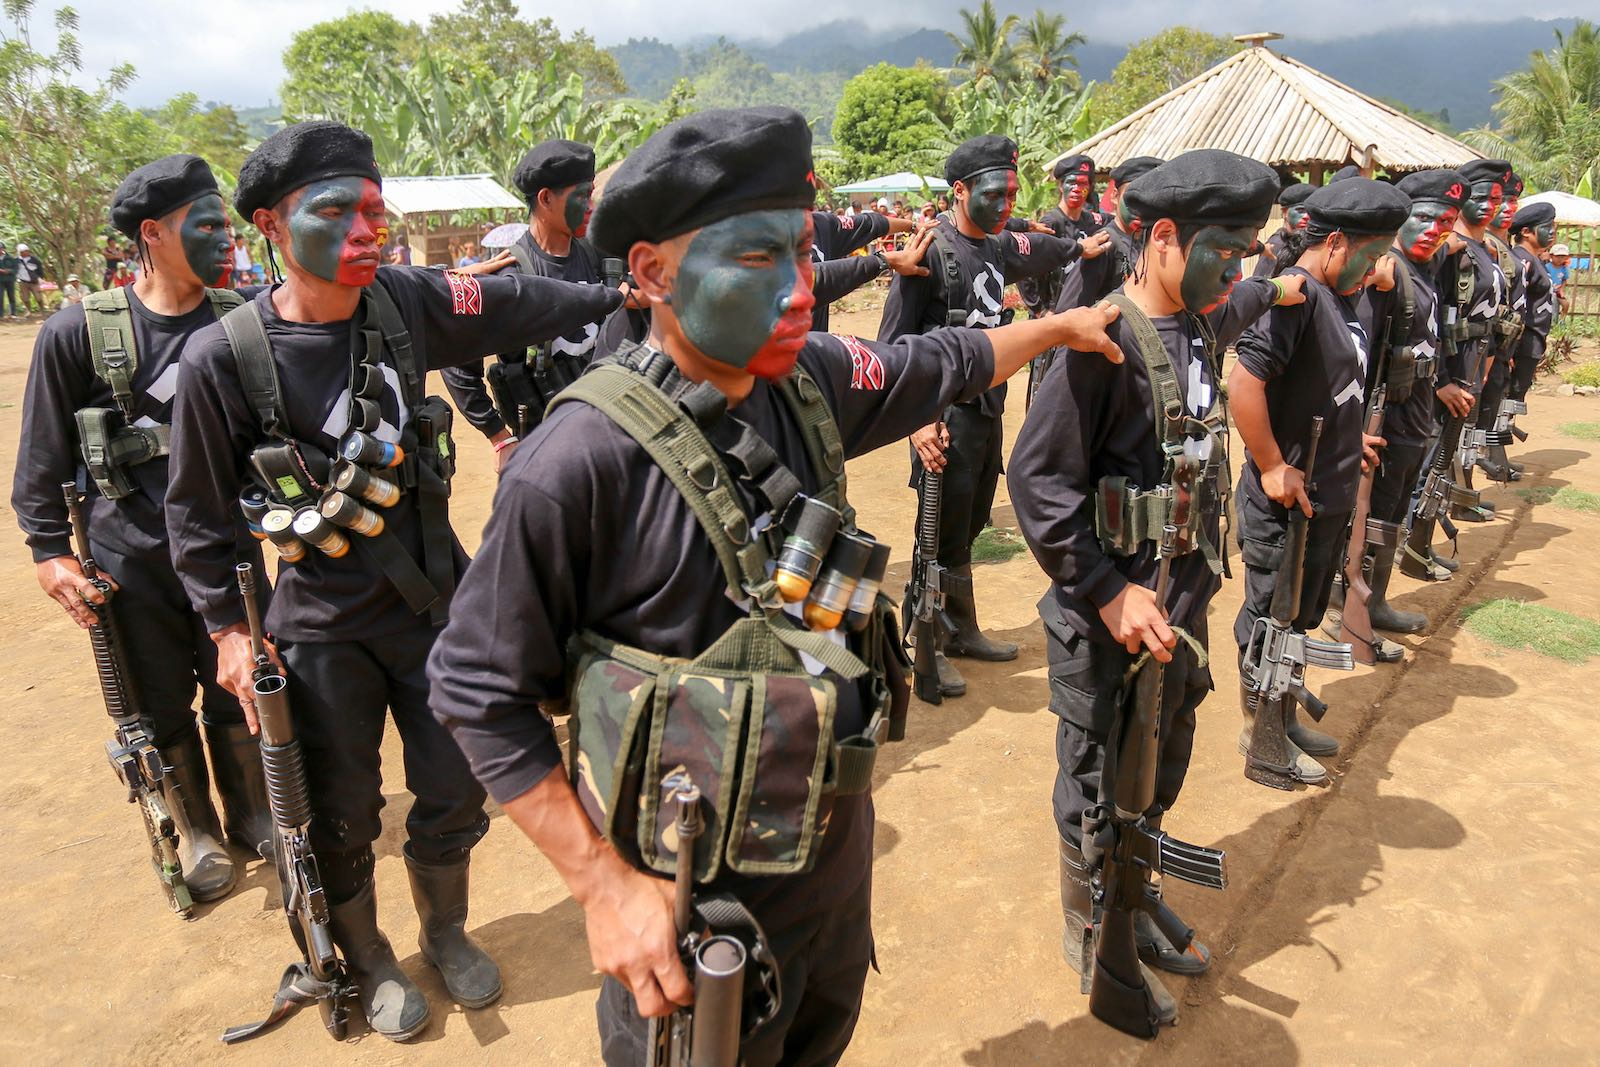 Insurgent group the New People's Army has sought to foment a communist revolution in the rural regions of the Philippines (Photo: Manman Dejeto via Getty)